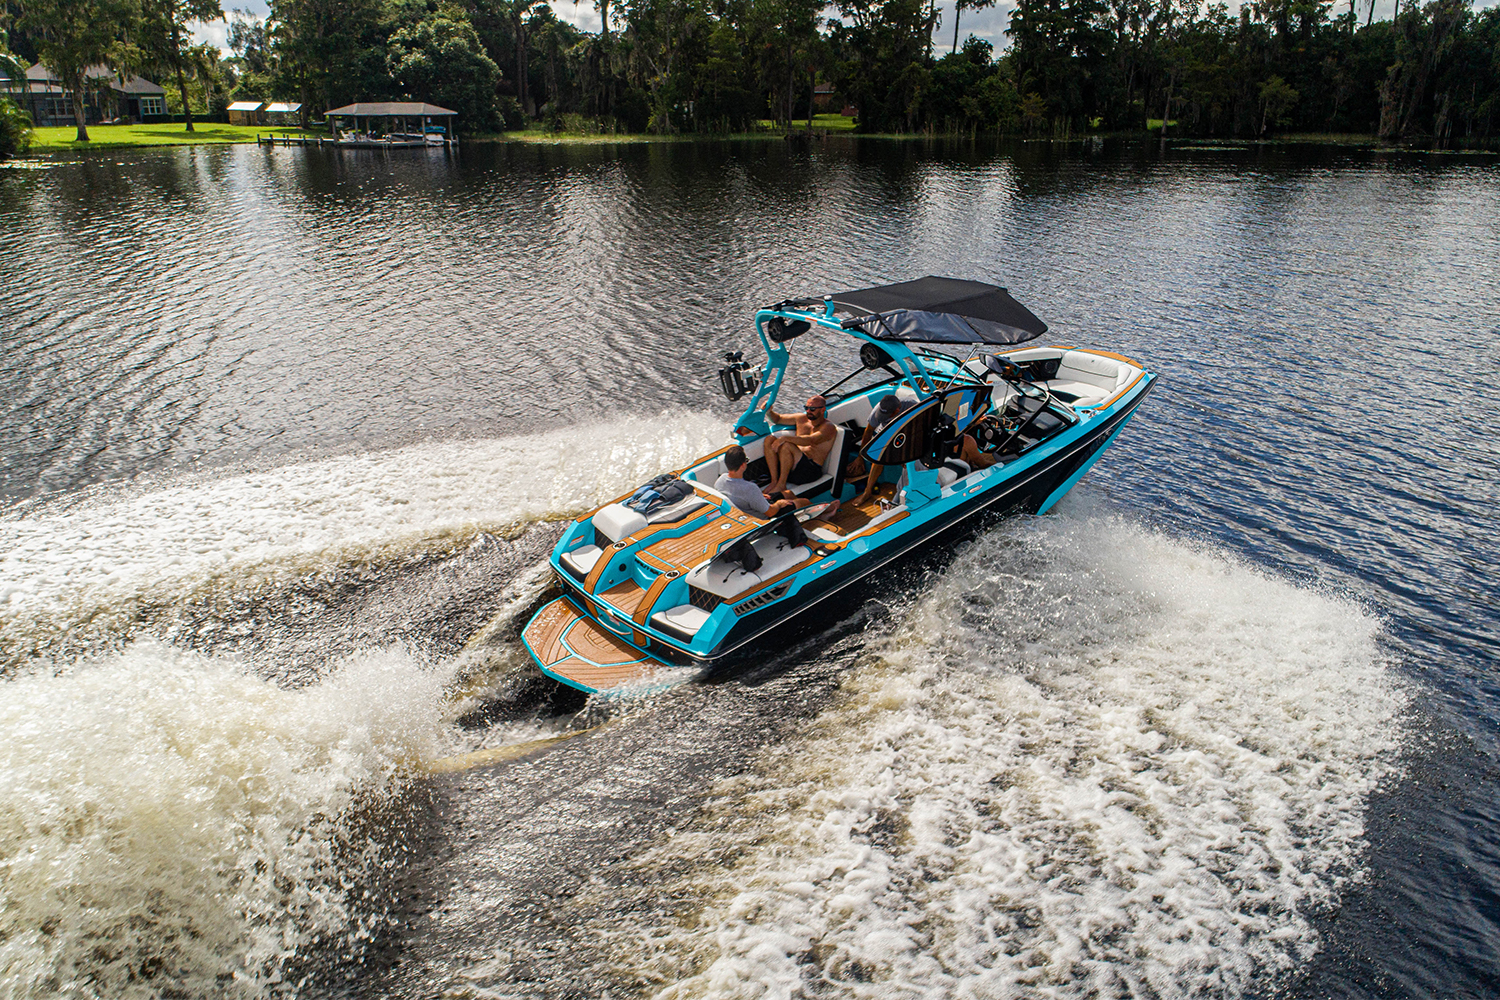 The Super Air Nautique GS22E, an electric towboat from Correct Craft, out on the water. It features technology from Watershed Innovations and Ingenity Electric.